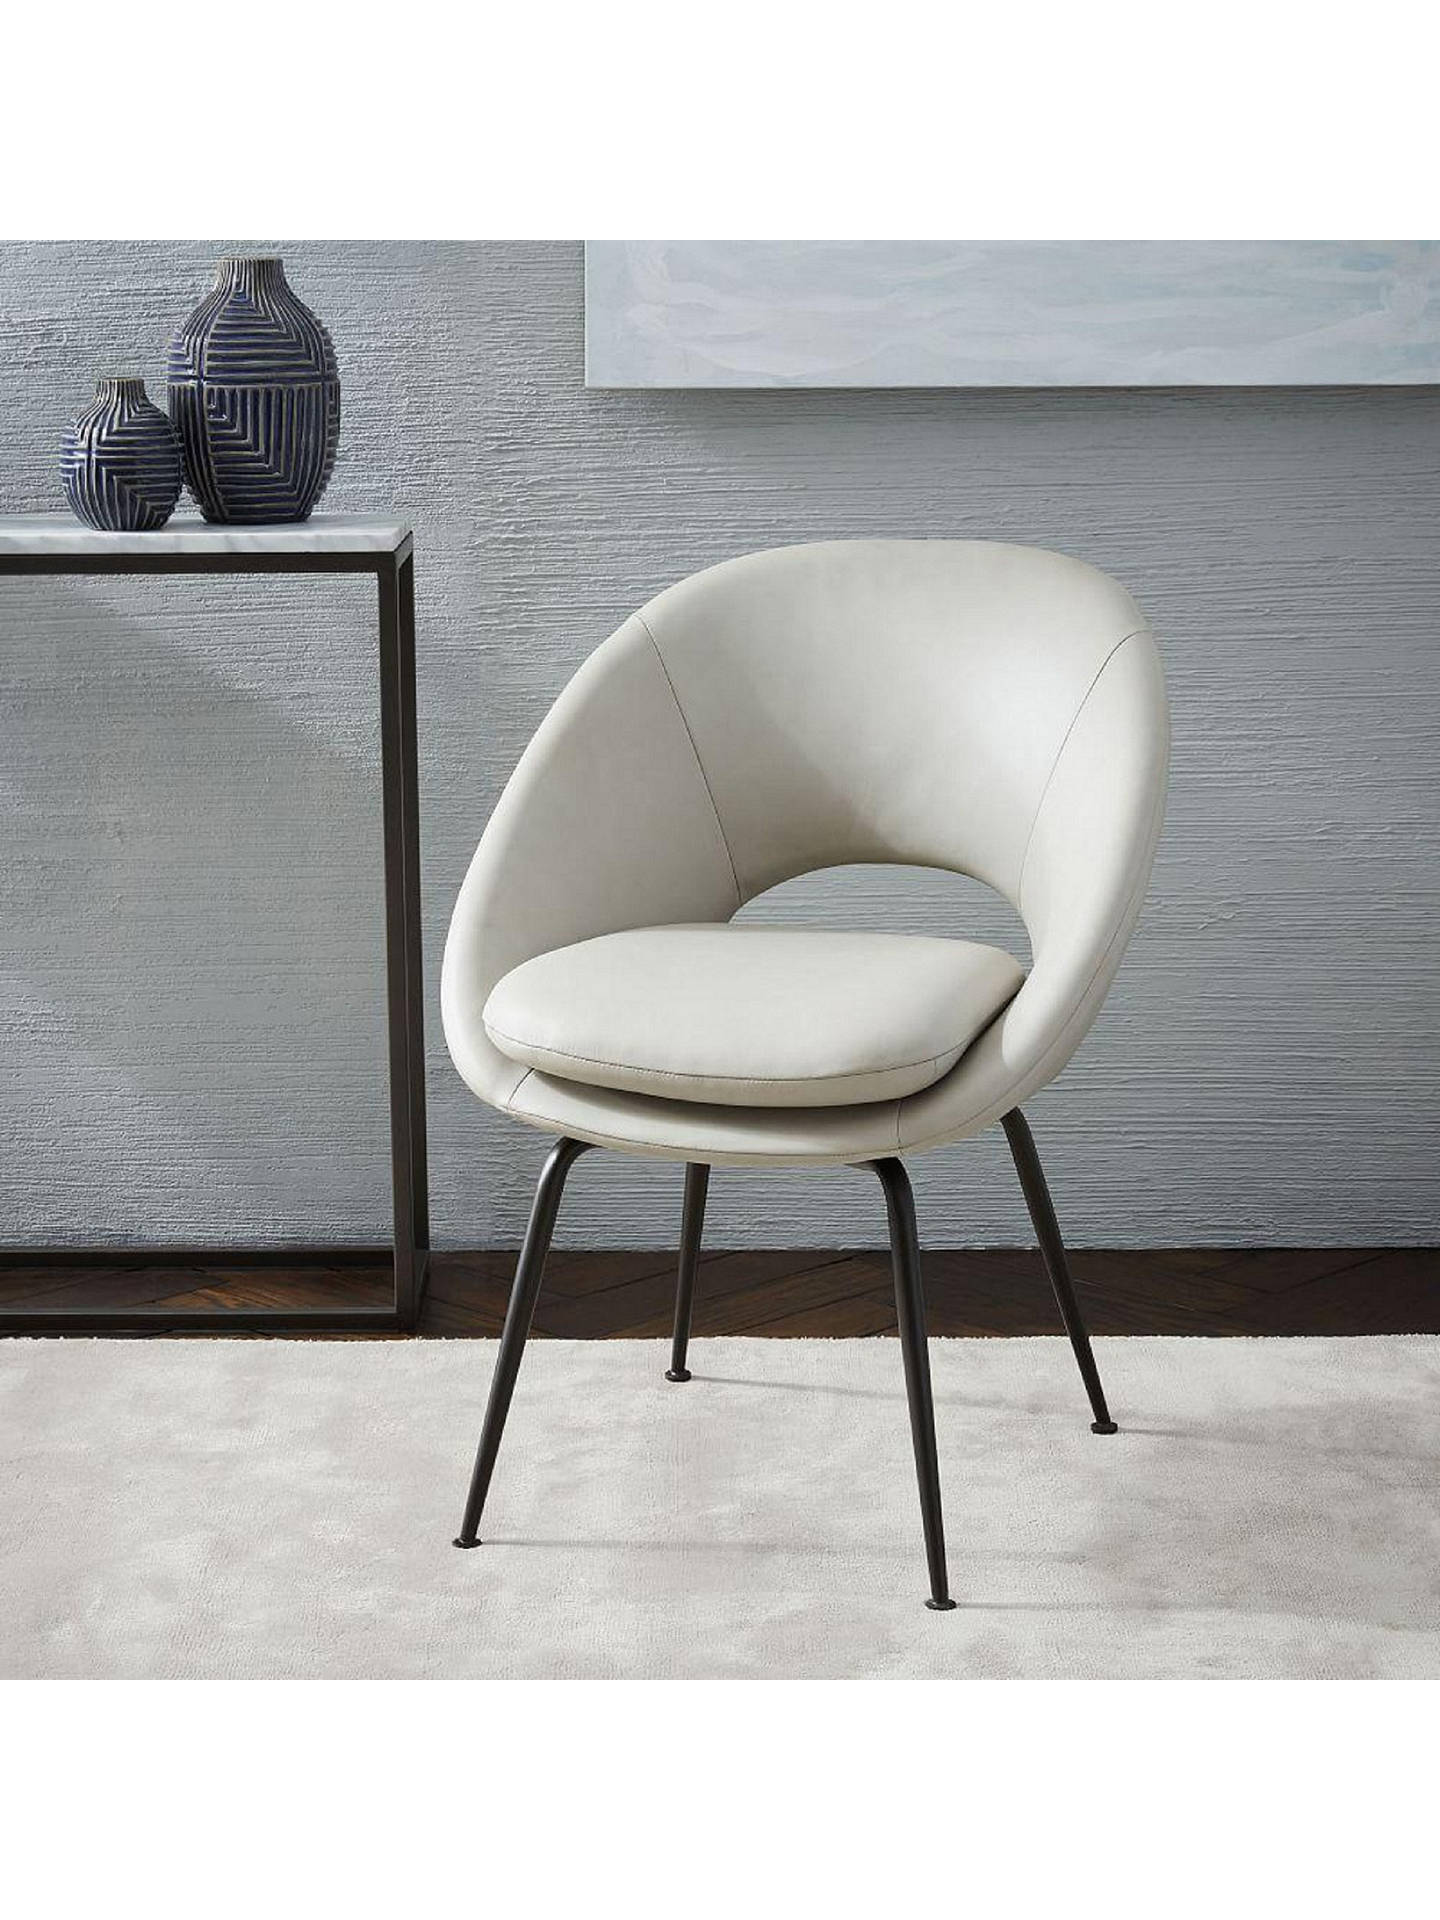 Terrific West Elm Orb Upholstered Dining Chair Cement At John Lewis Gmtry Best Dining Table And Chair Ideas Images Gmtryco